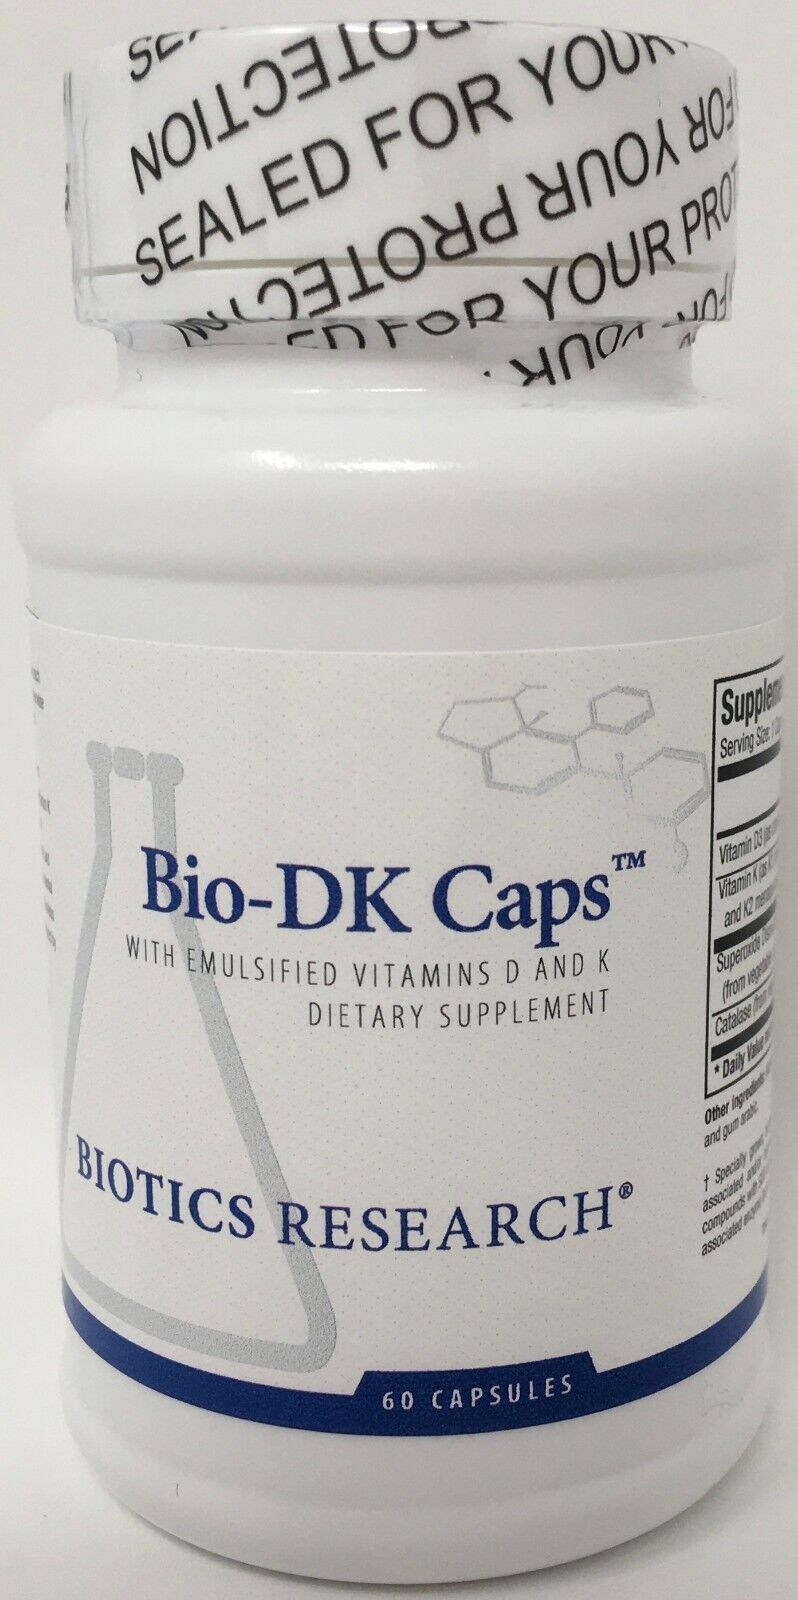 Biotics Research - Bio-DK Caps 60c (BioDK) Emulsified Vitamin D 5,000 IU + K1 K2